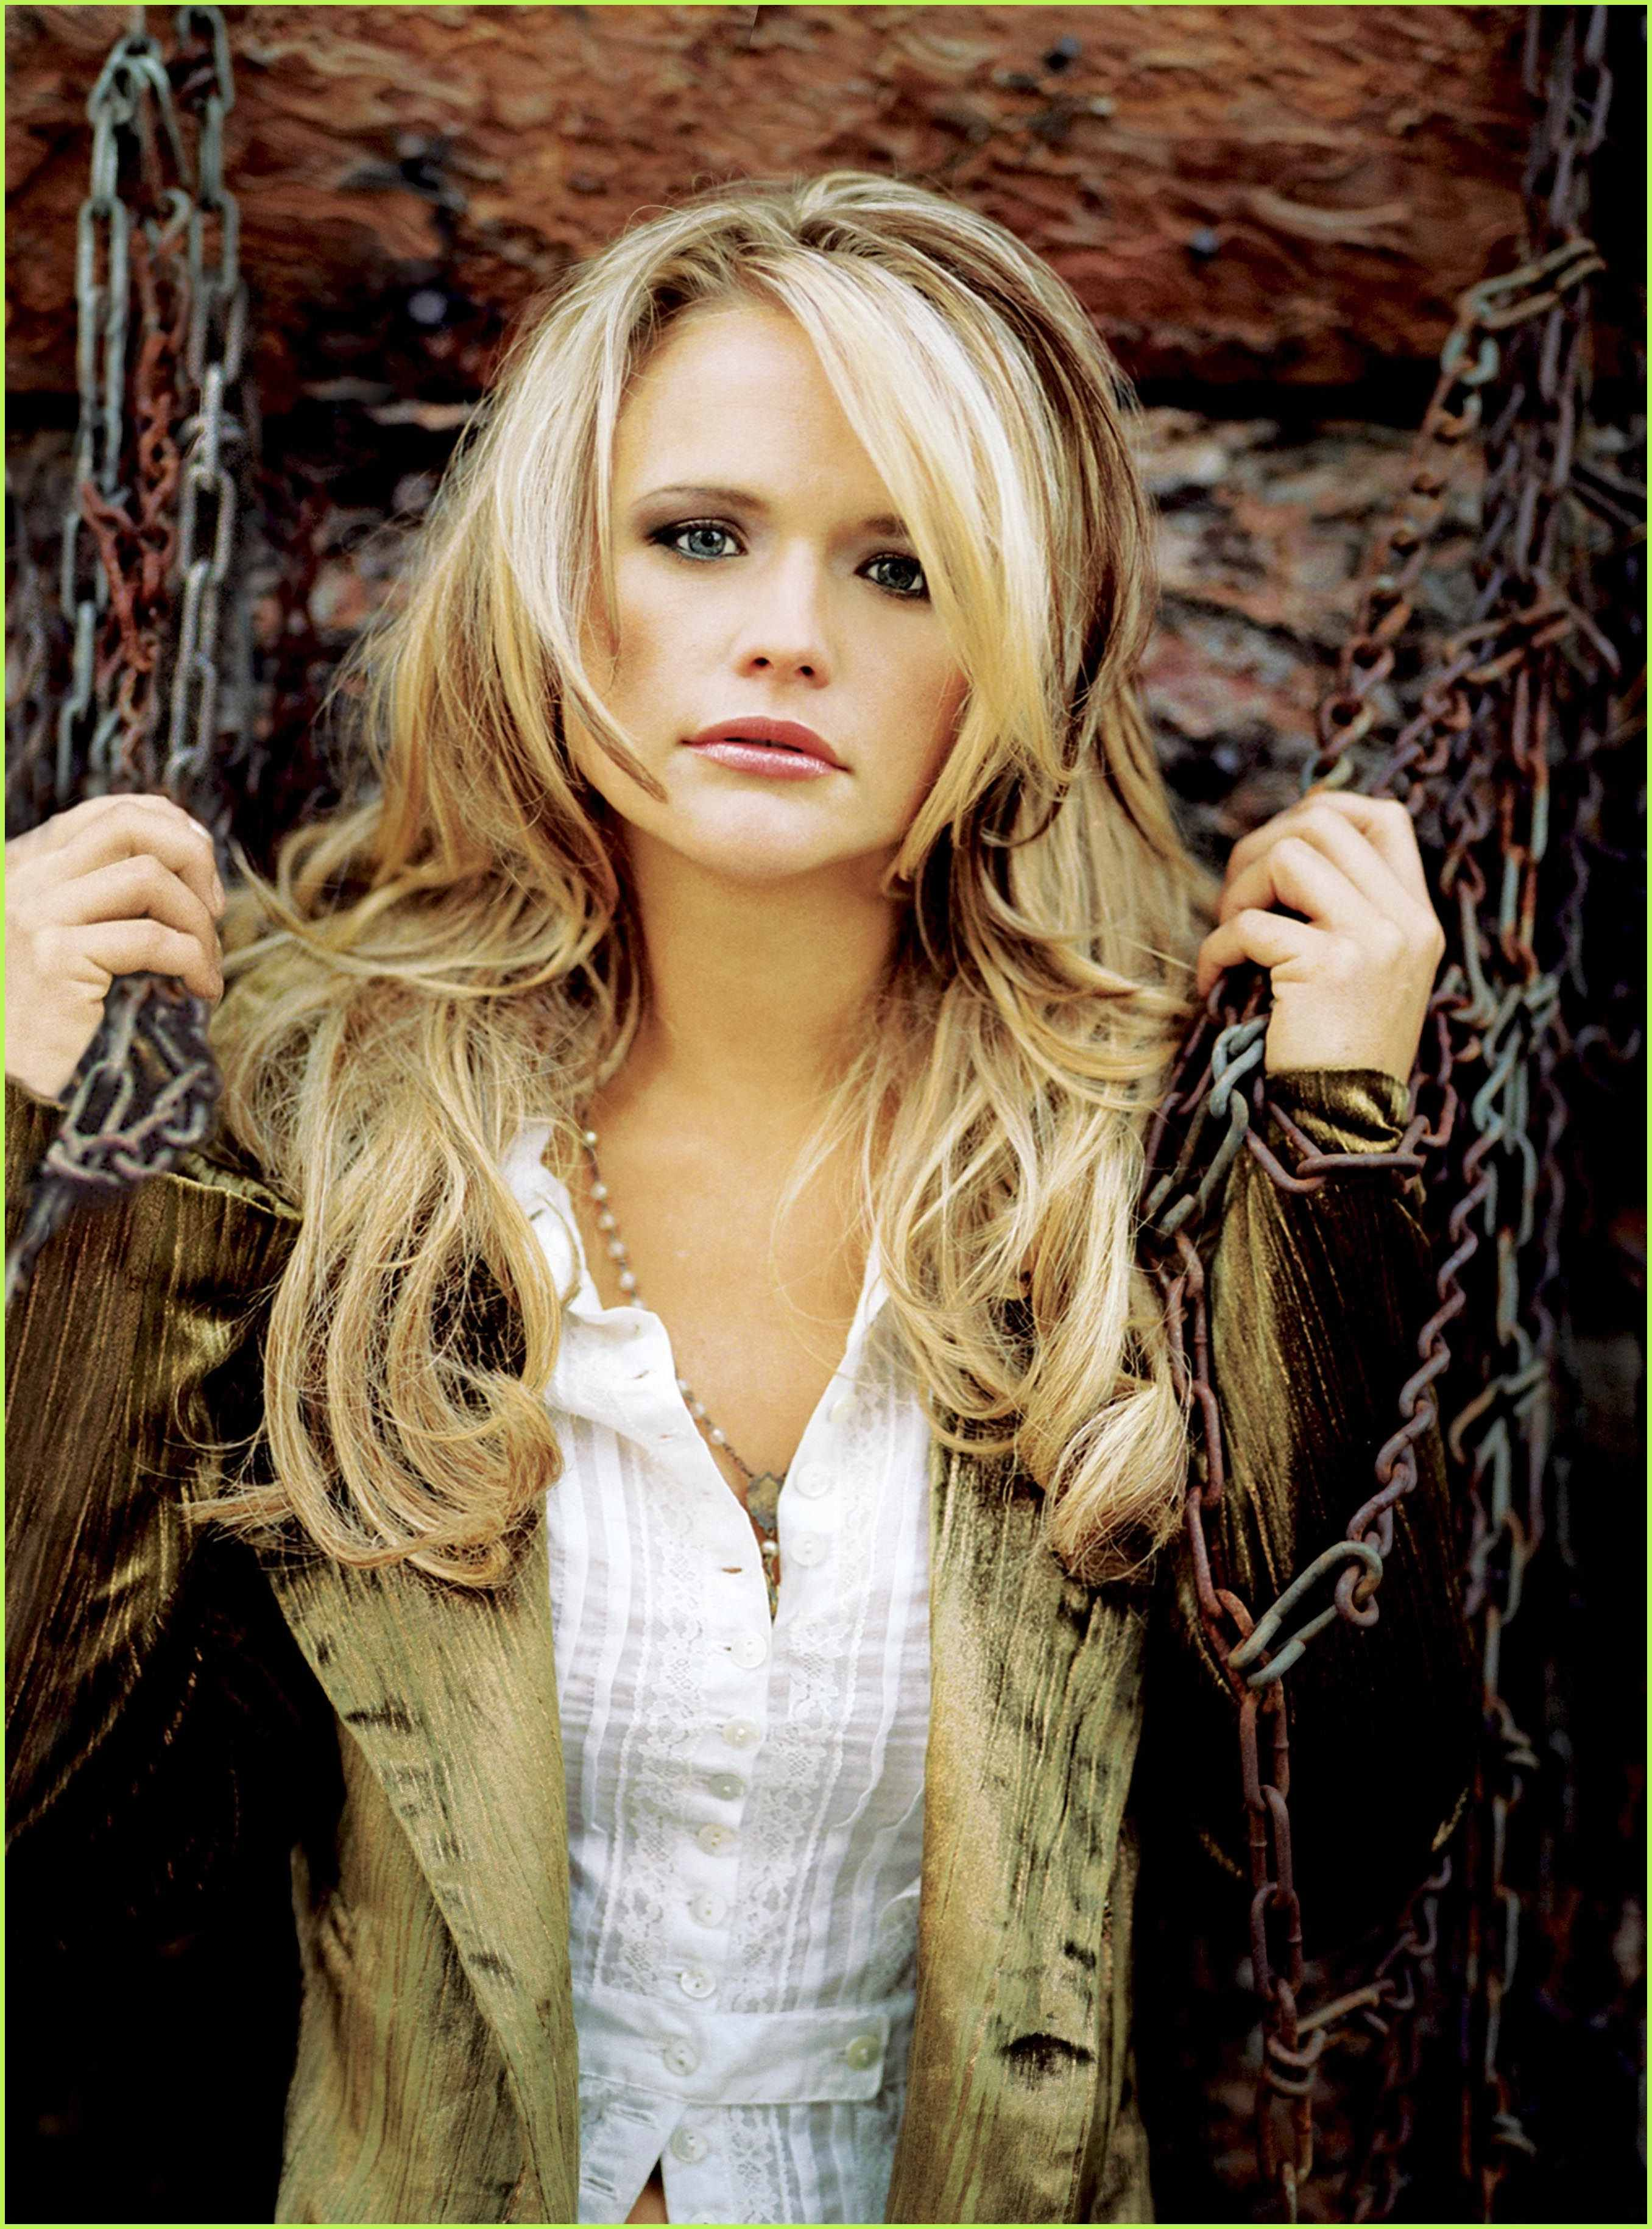 Miranda Lambert Love The Hair Style And Color Hair Inspiration Makeup Trends Hair Styles Miranda Lambert Hair Hair Inspiration